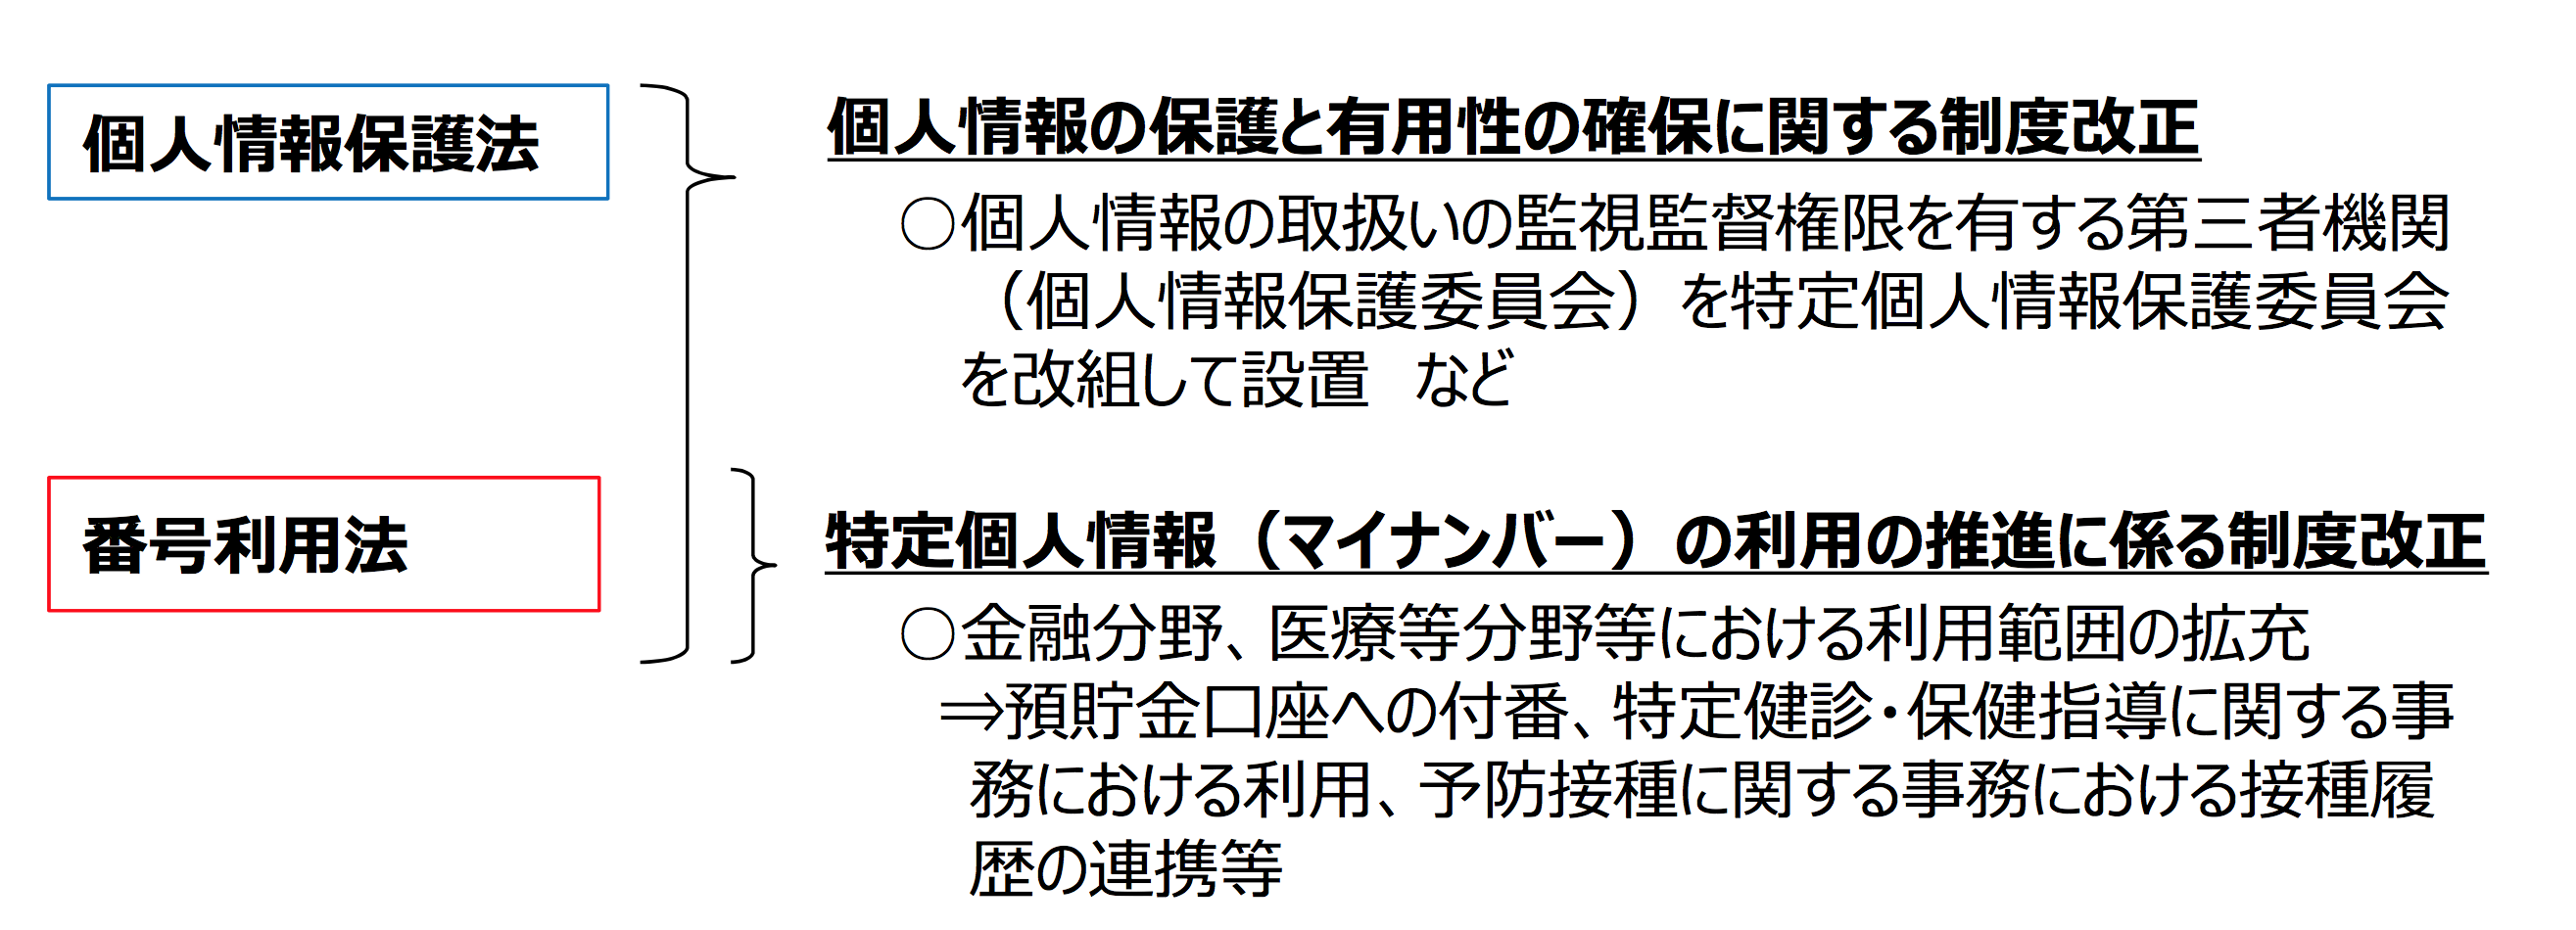 20150612013133950.png